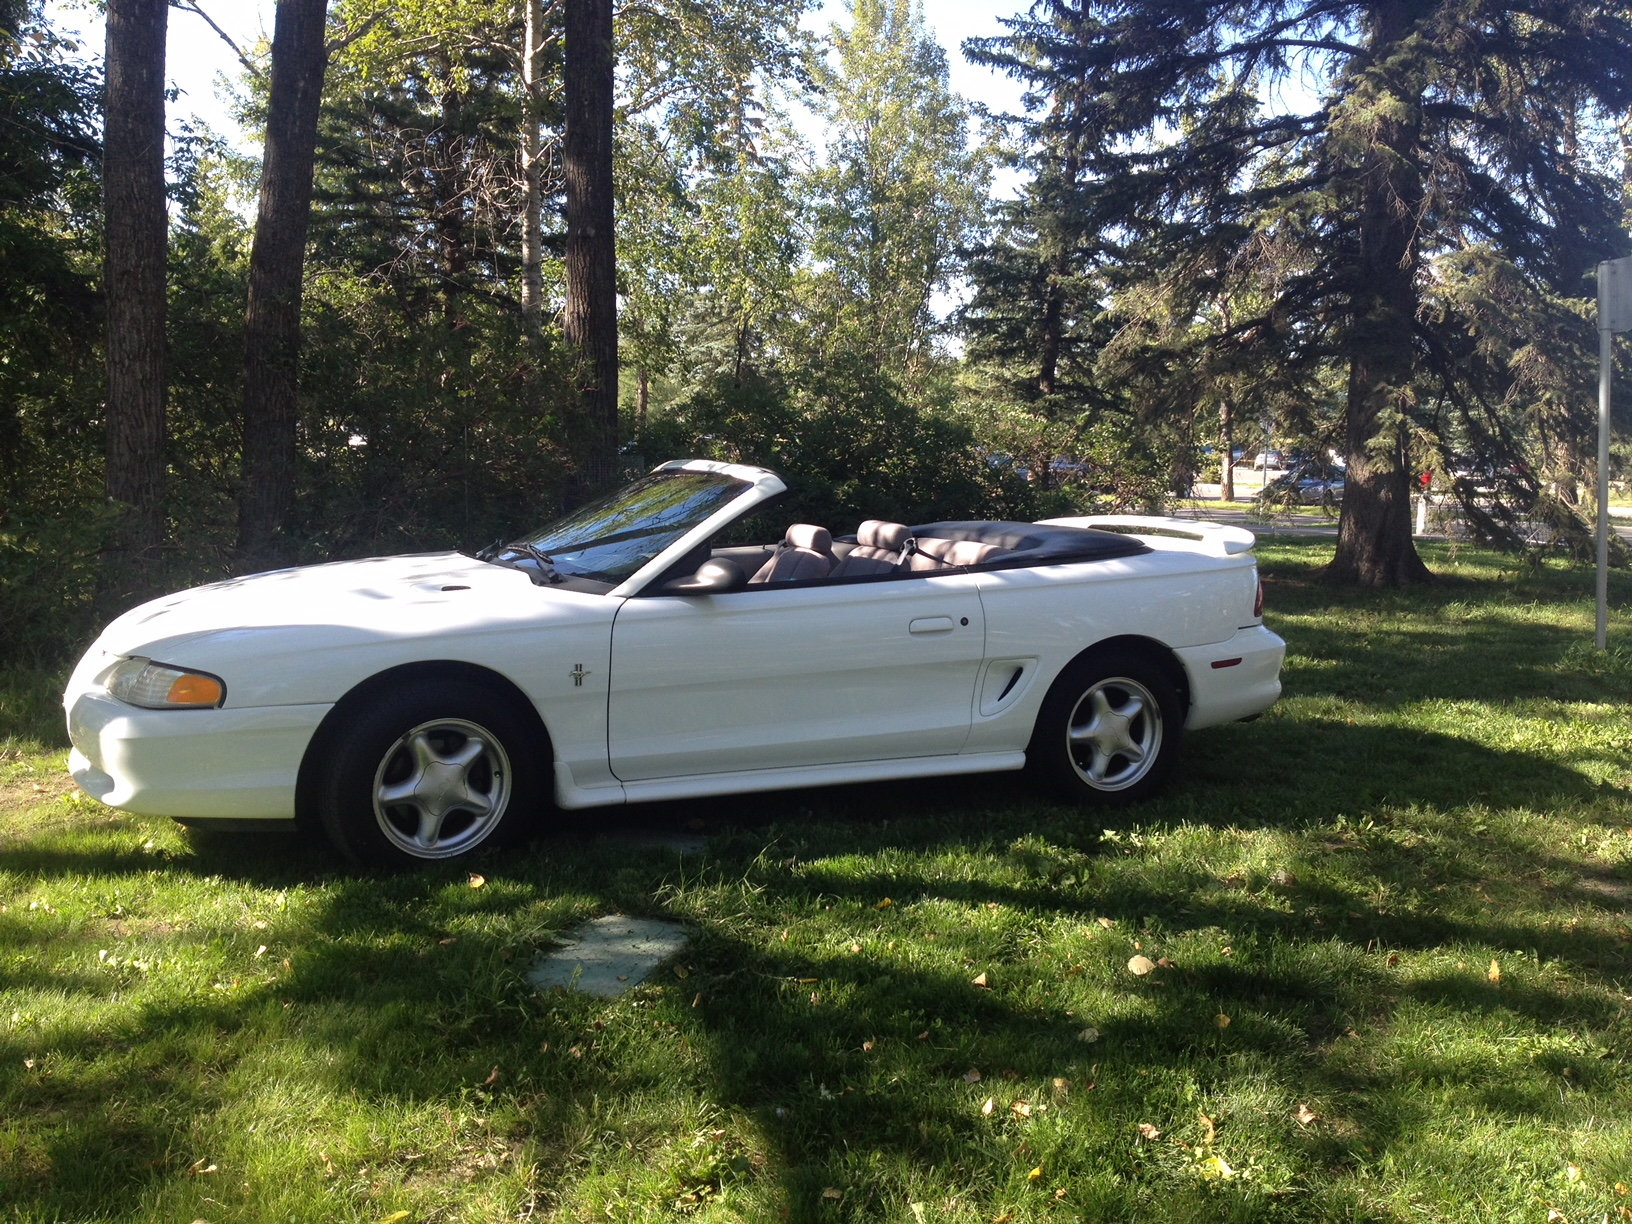 Remote Car Starter Calgary >> 1997 mustang convertible for sale - Canadian Mustang Owners Club - Ford Mustang Forums